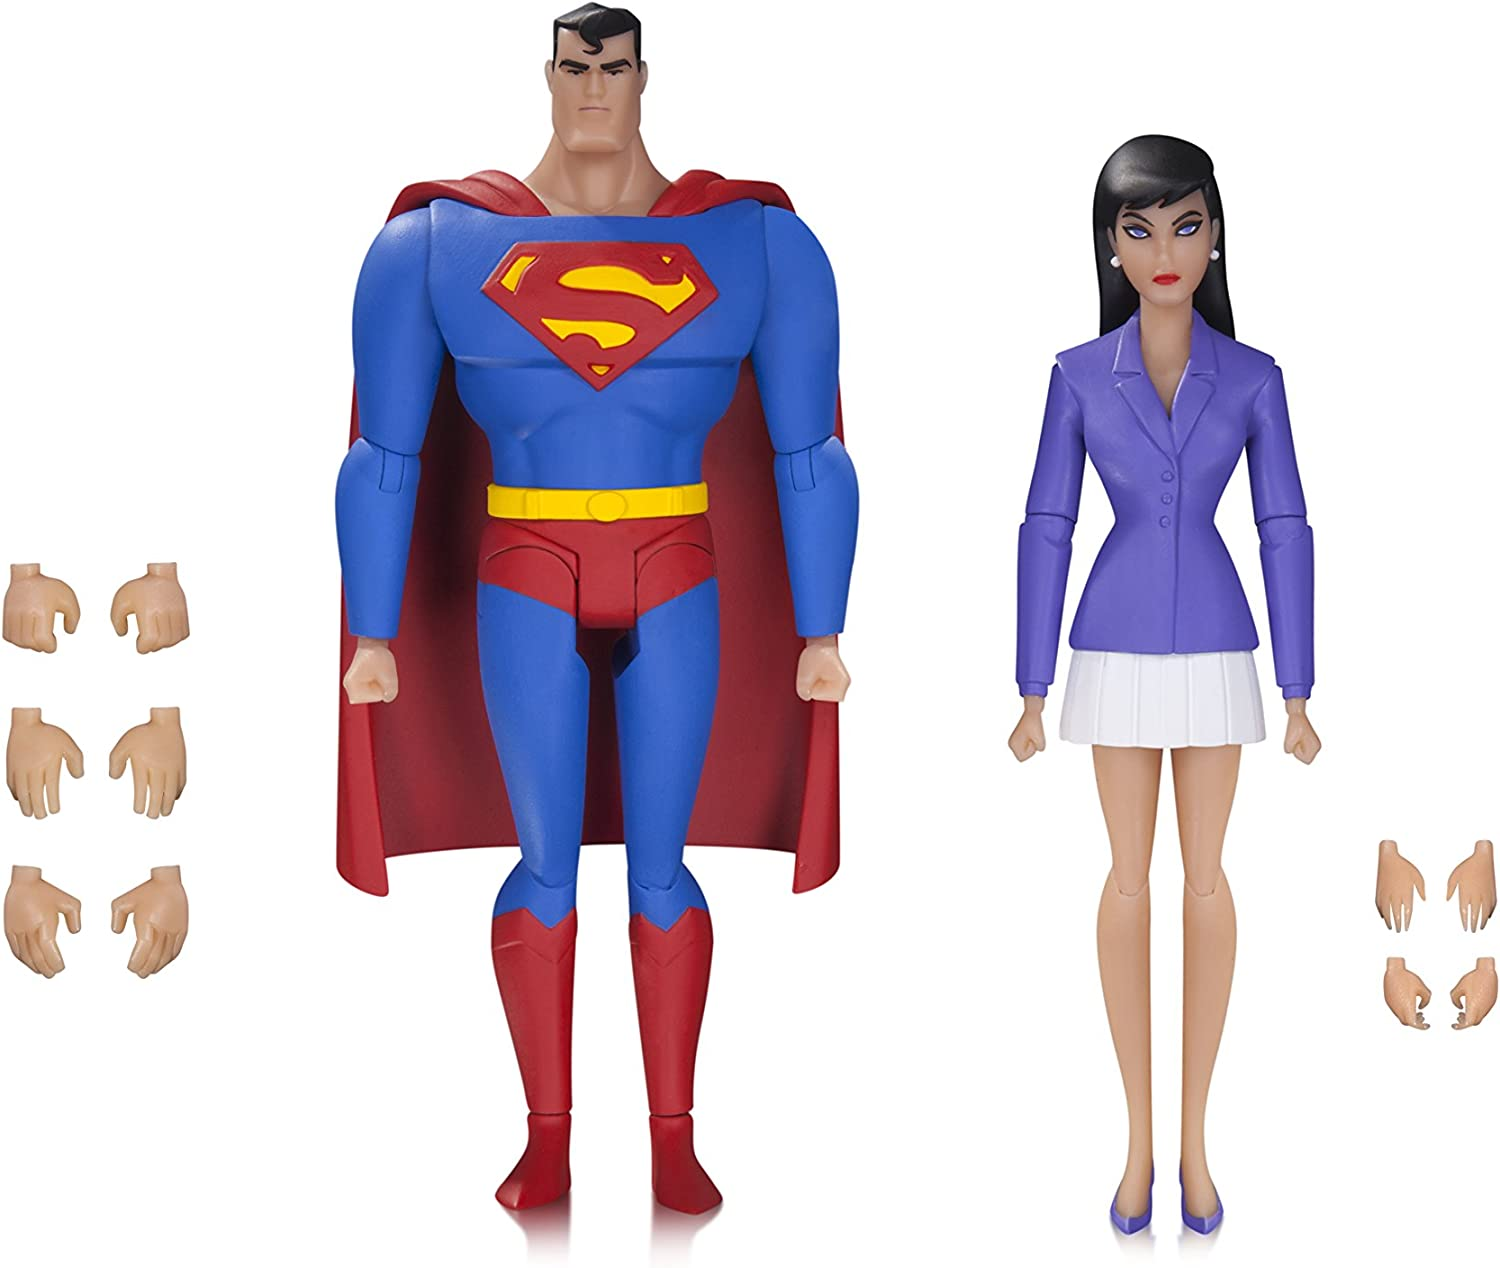 New DC UNIVERSE Super Man Best Buy Exclusive Animated Direct 4.5/'/' Figure Toys